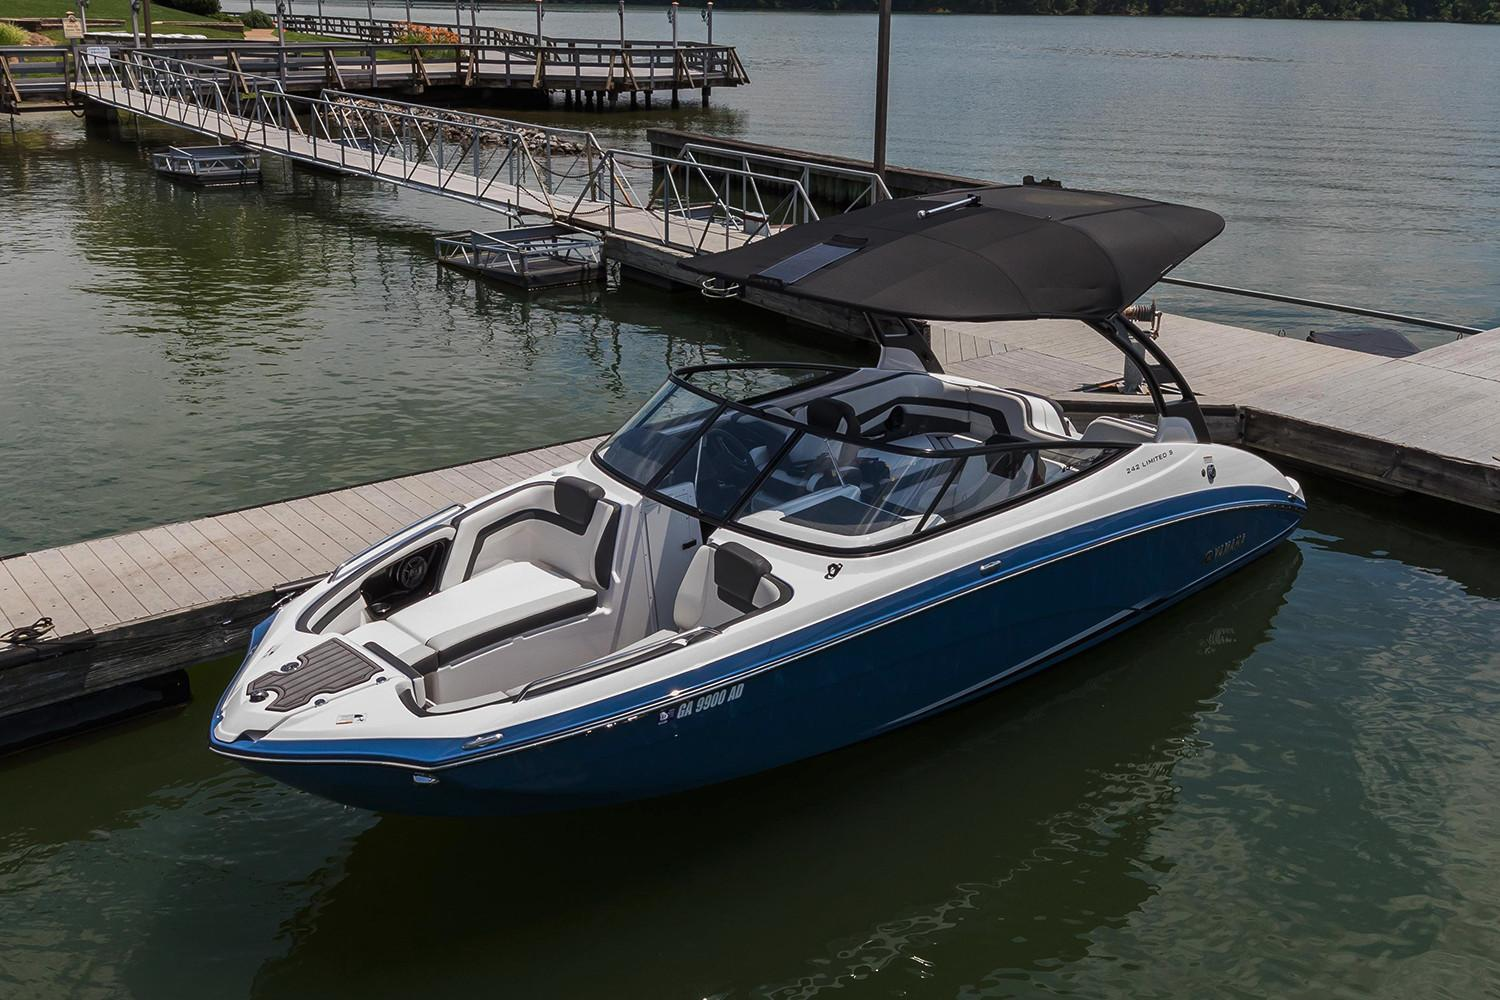 2018 Yamaha 242 Limited S E-Series in Metuchen, New Jersey